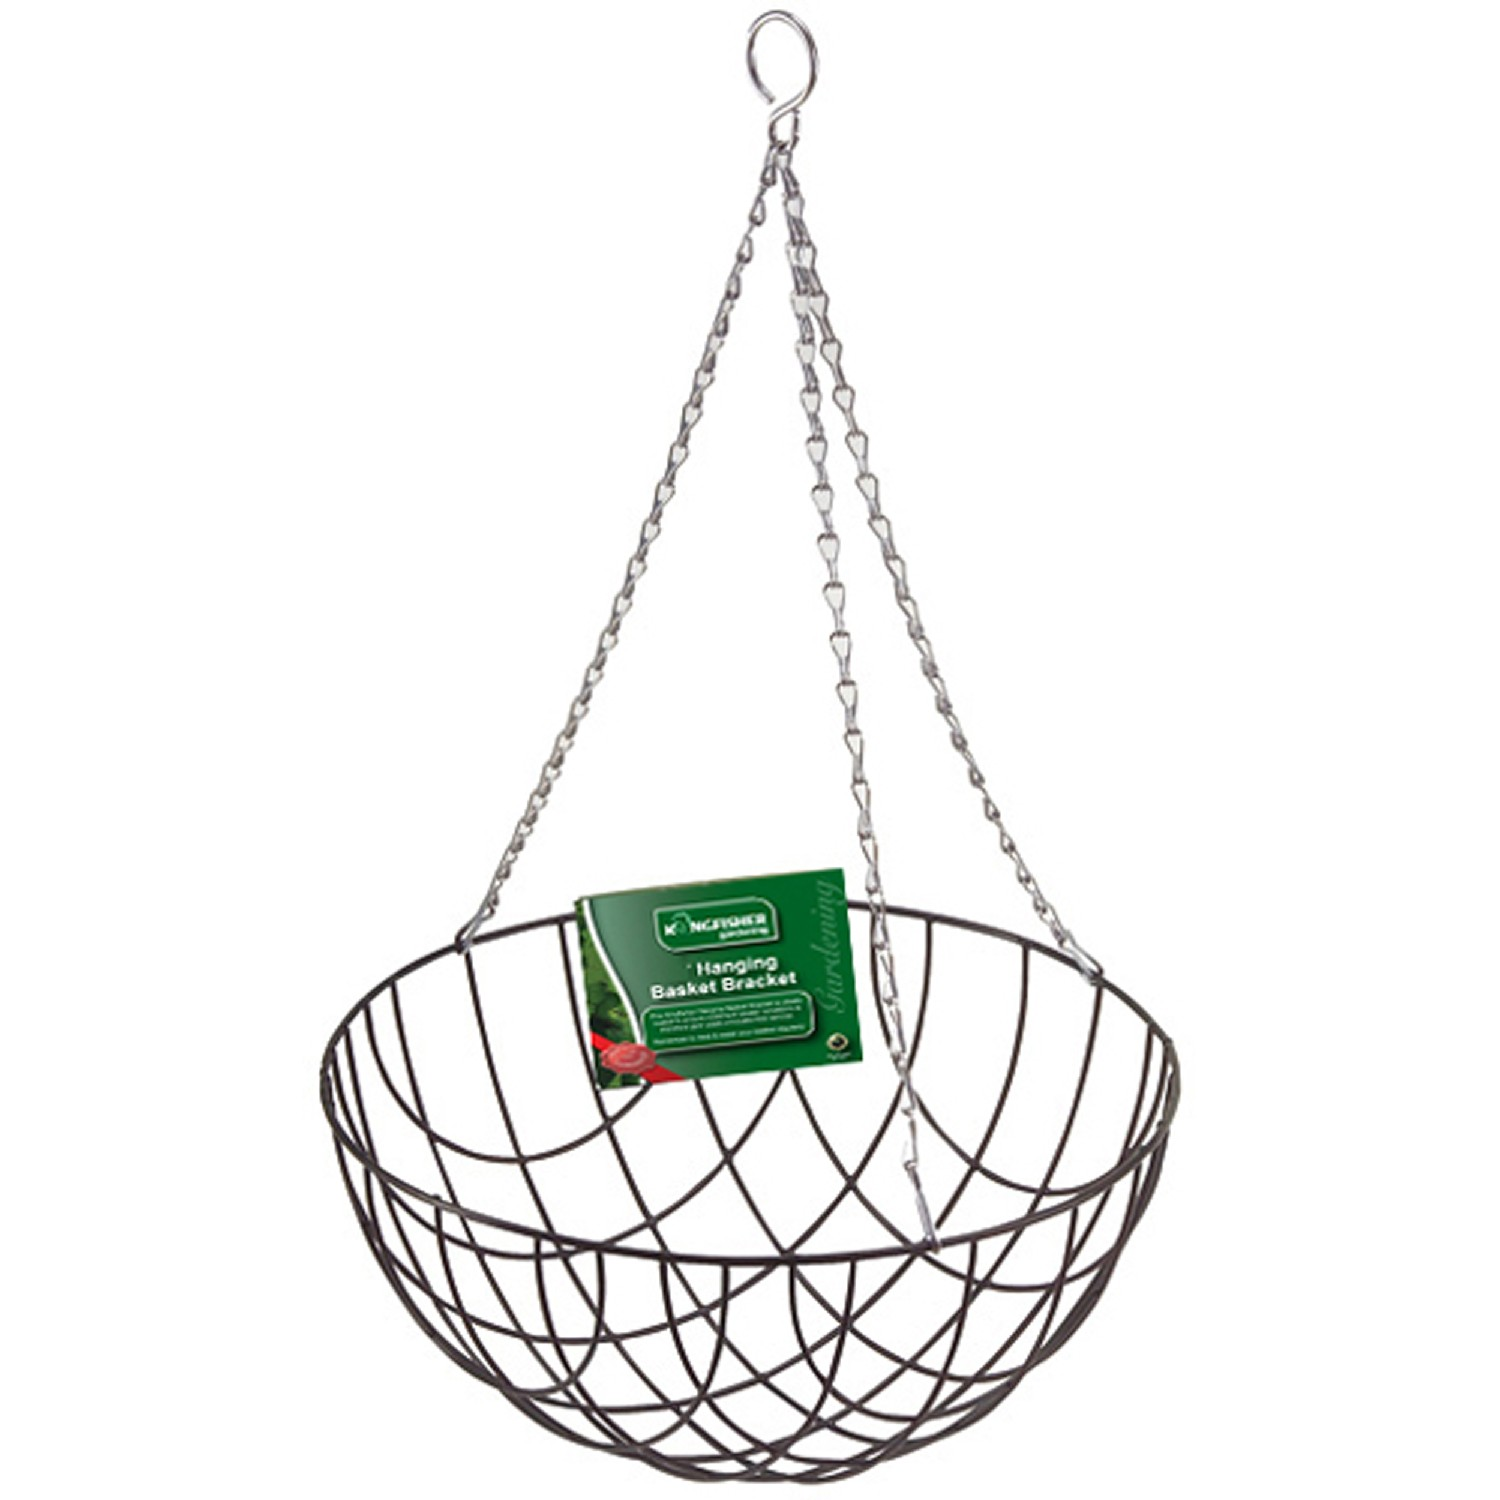 Kingfisher 12 Wire Hanging Basket Bracket Plant Home Decor Green With Chain New